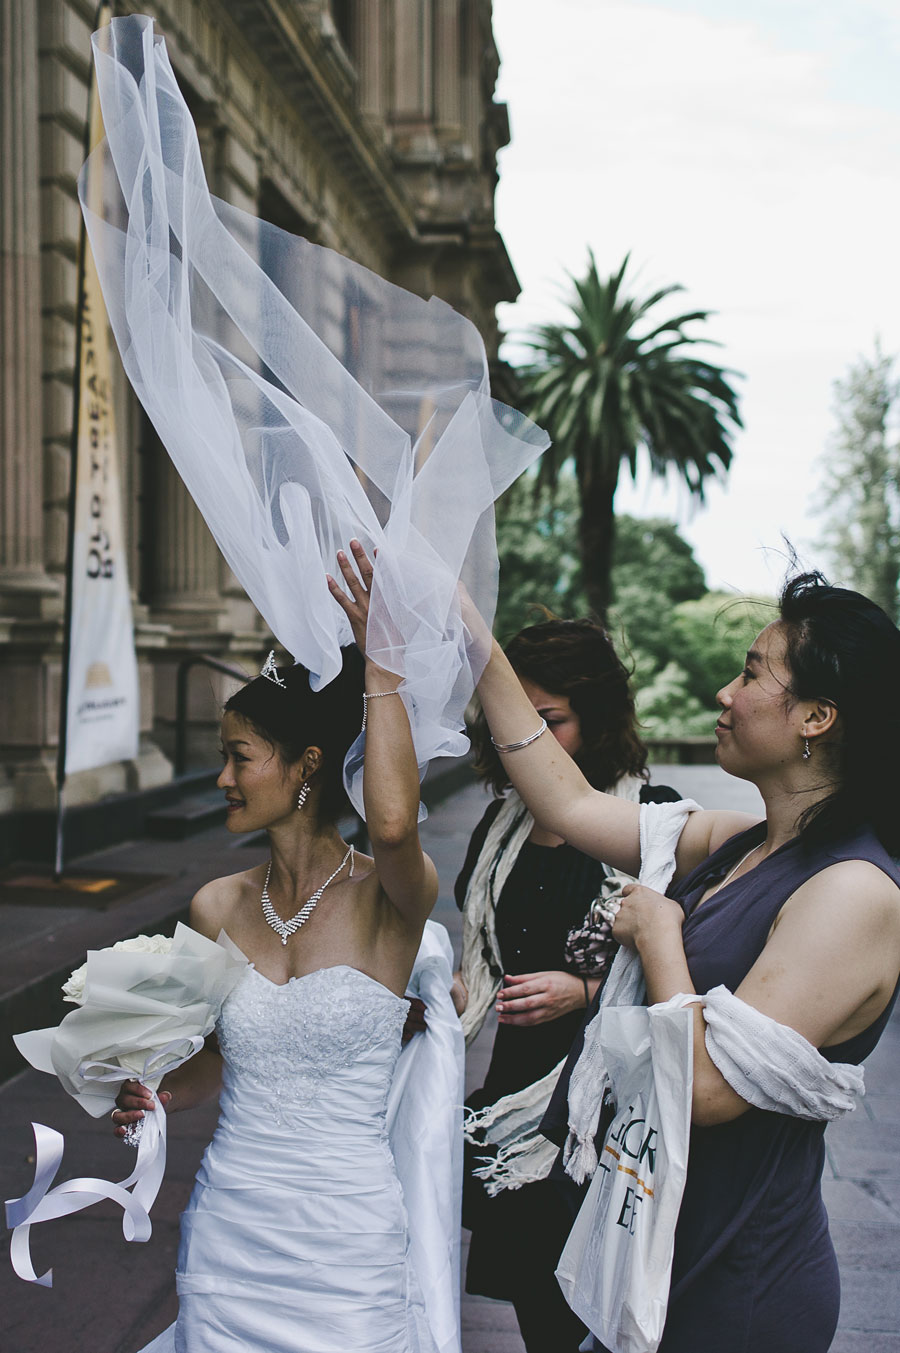 Windy wedding day outside Old Treasury Building